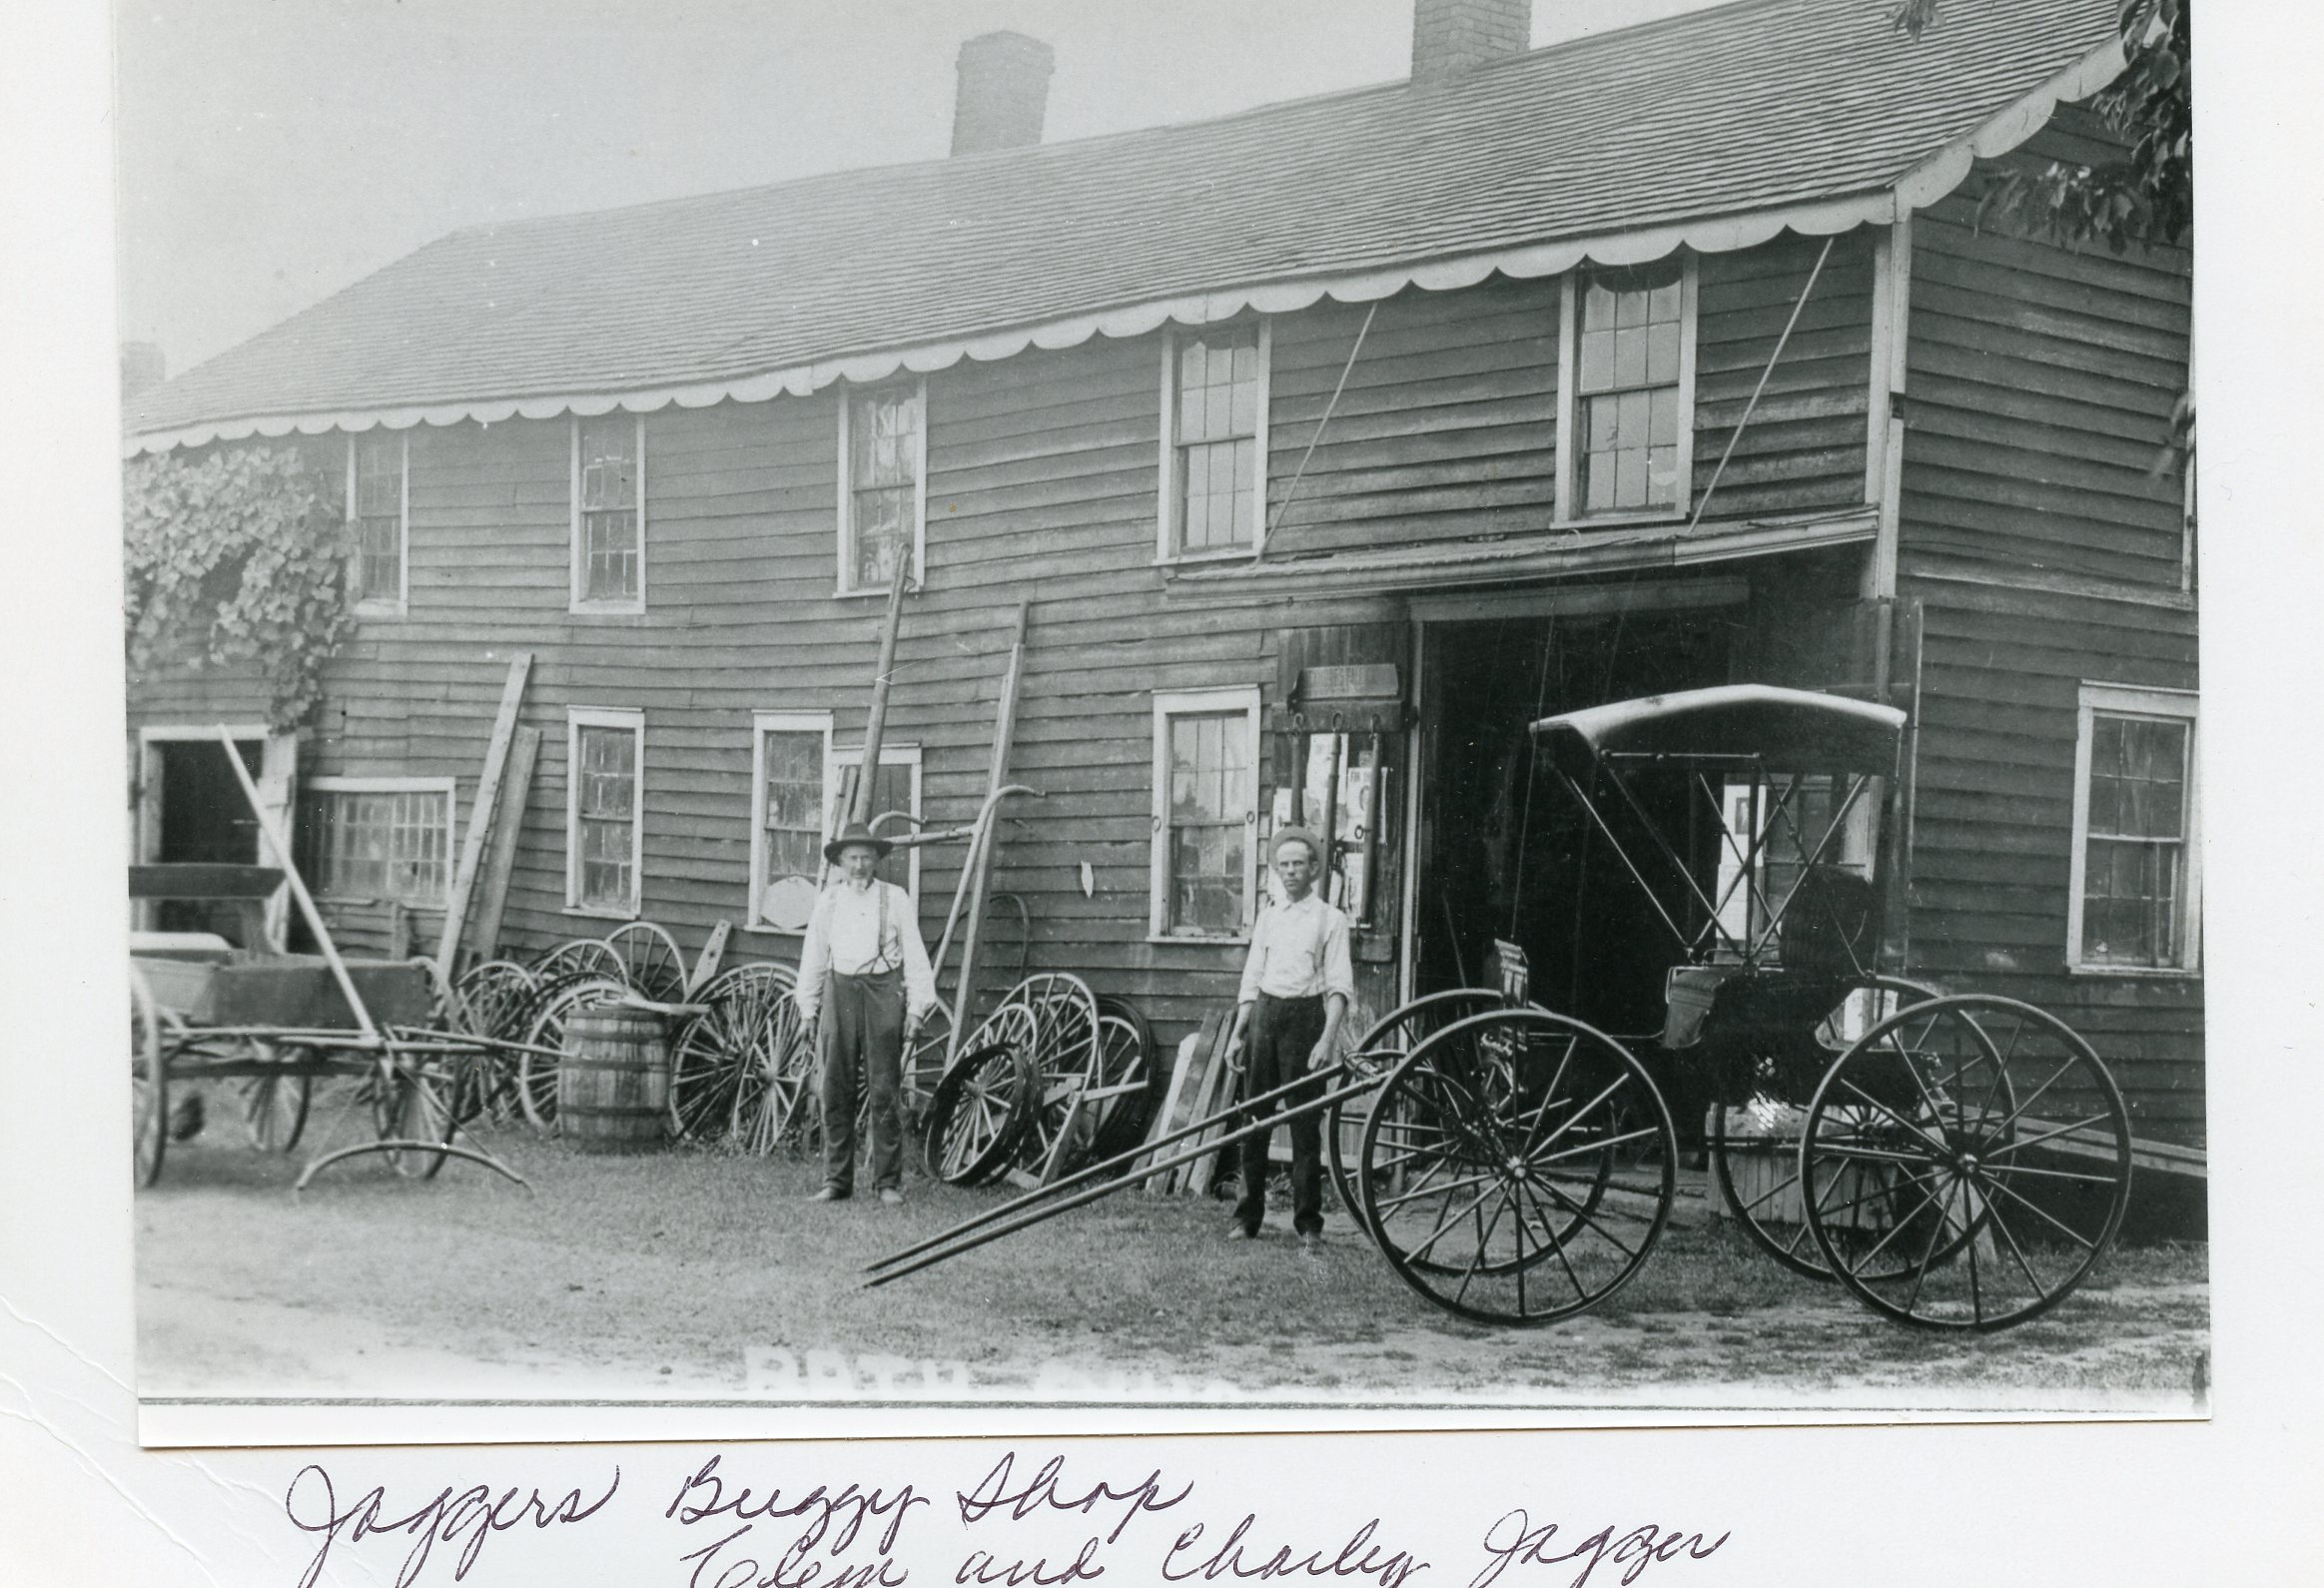 Jagger Wagon Shop